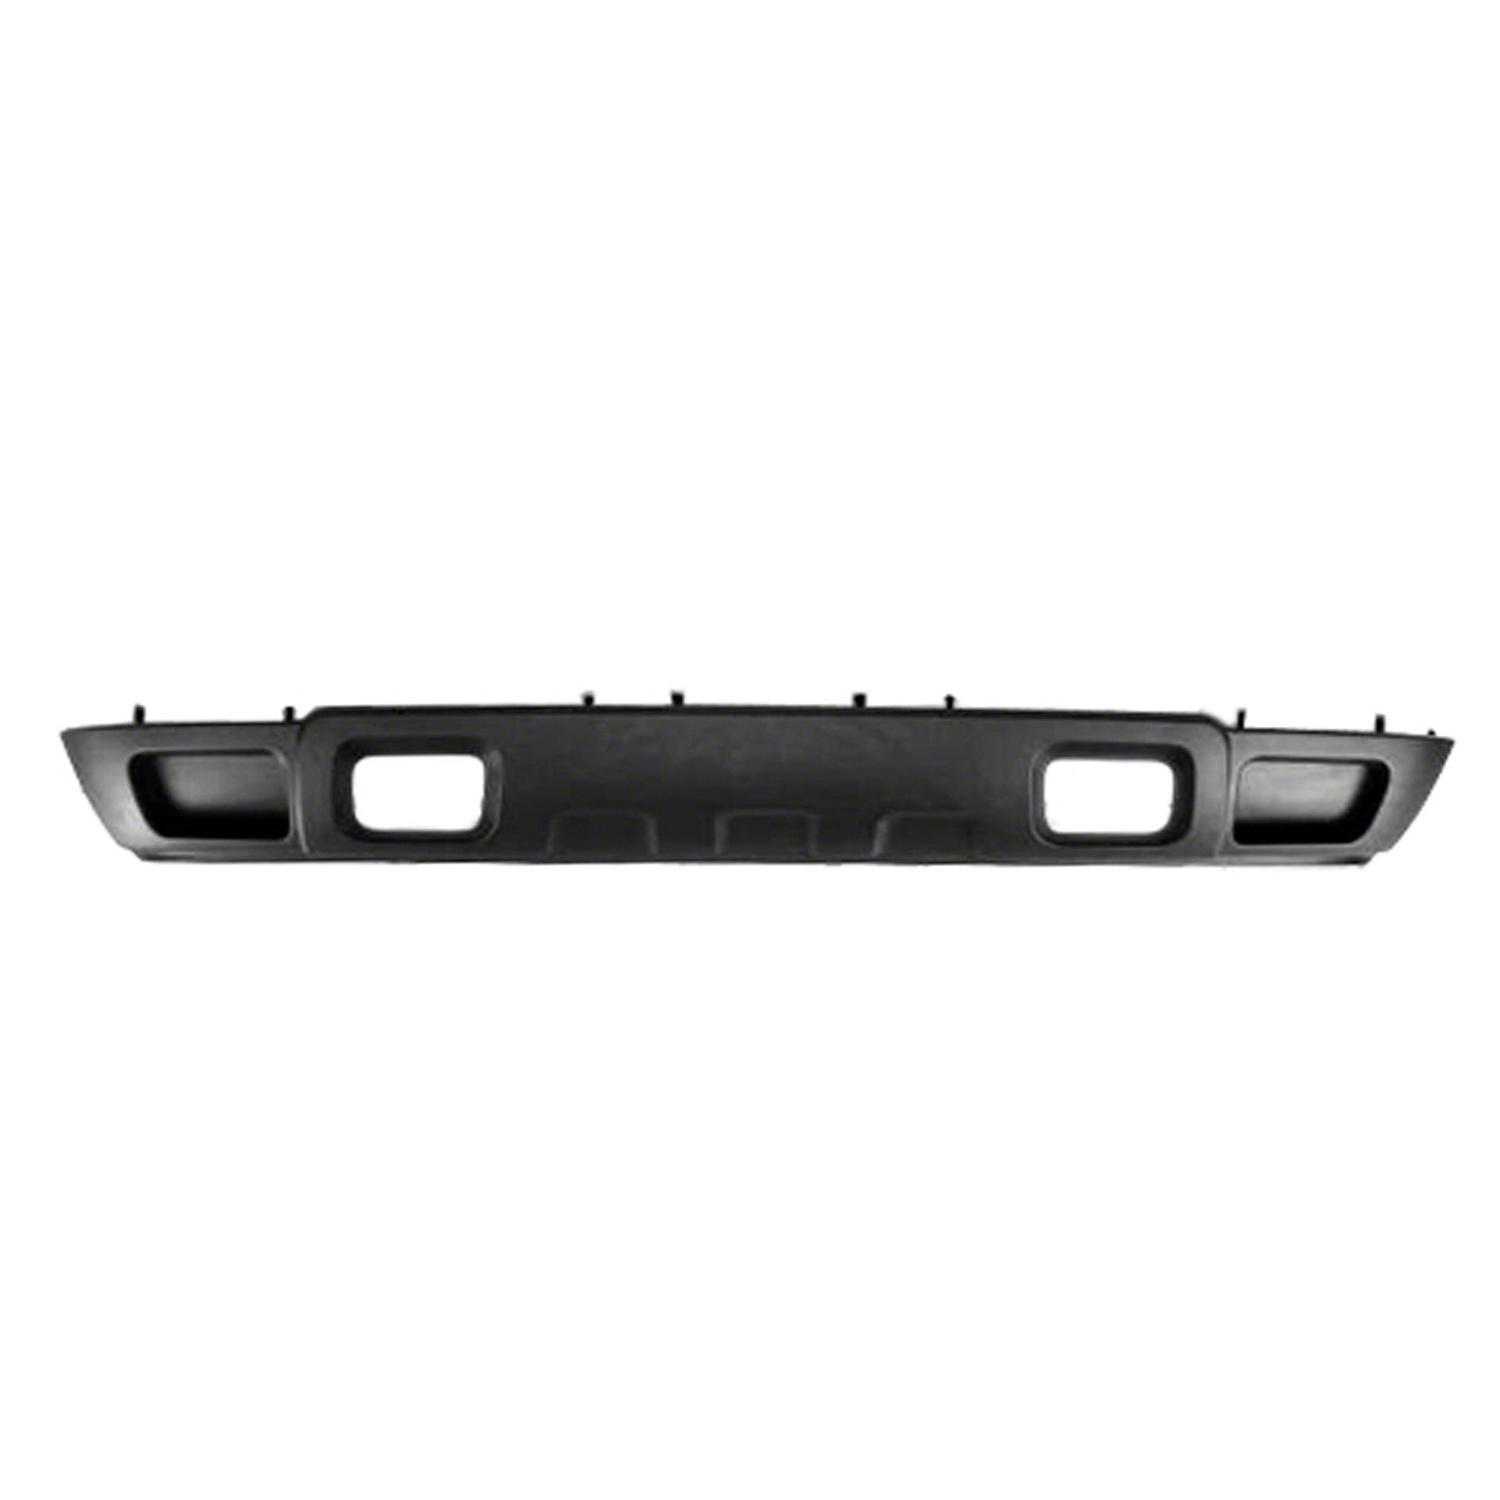 Front Lower Bumper Deflector For 2002-2006 Chevrolet Avalanche 10397999 P